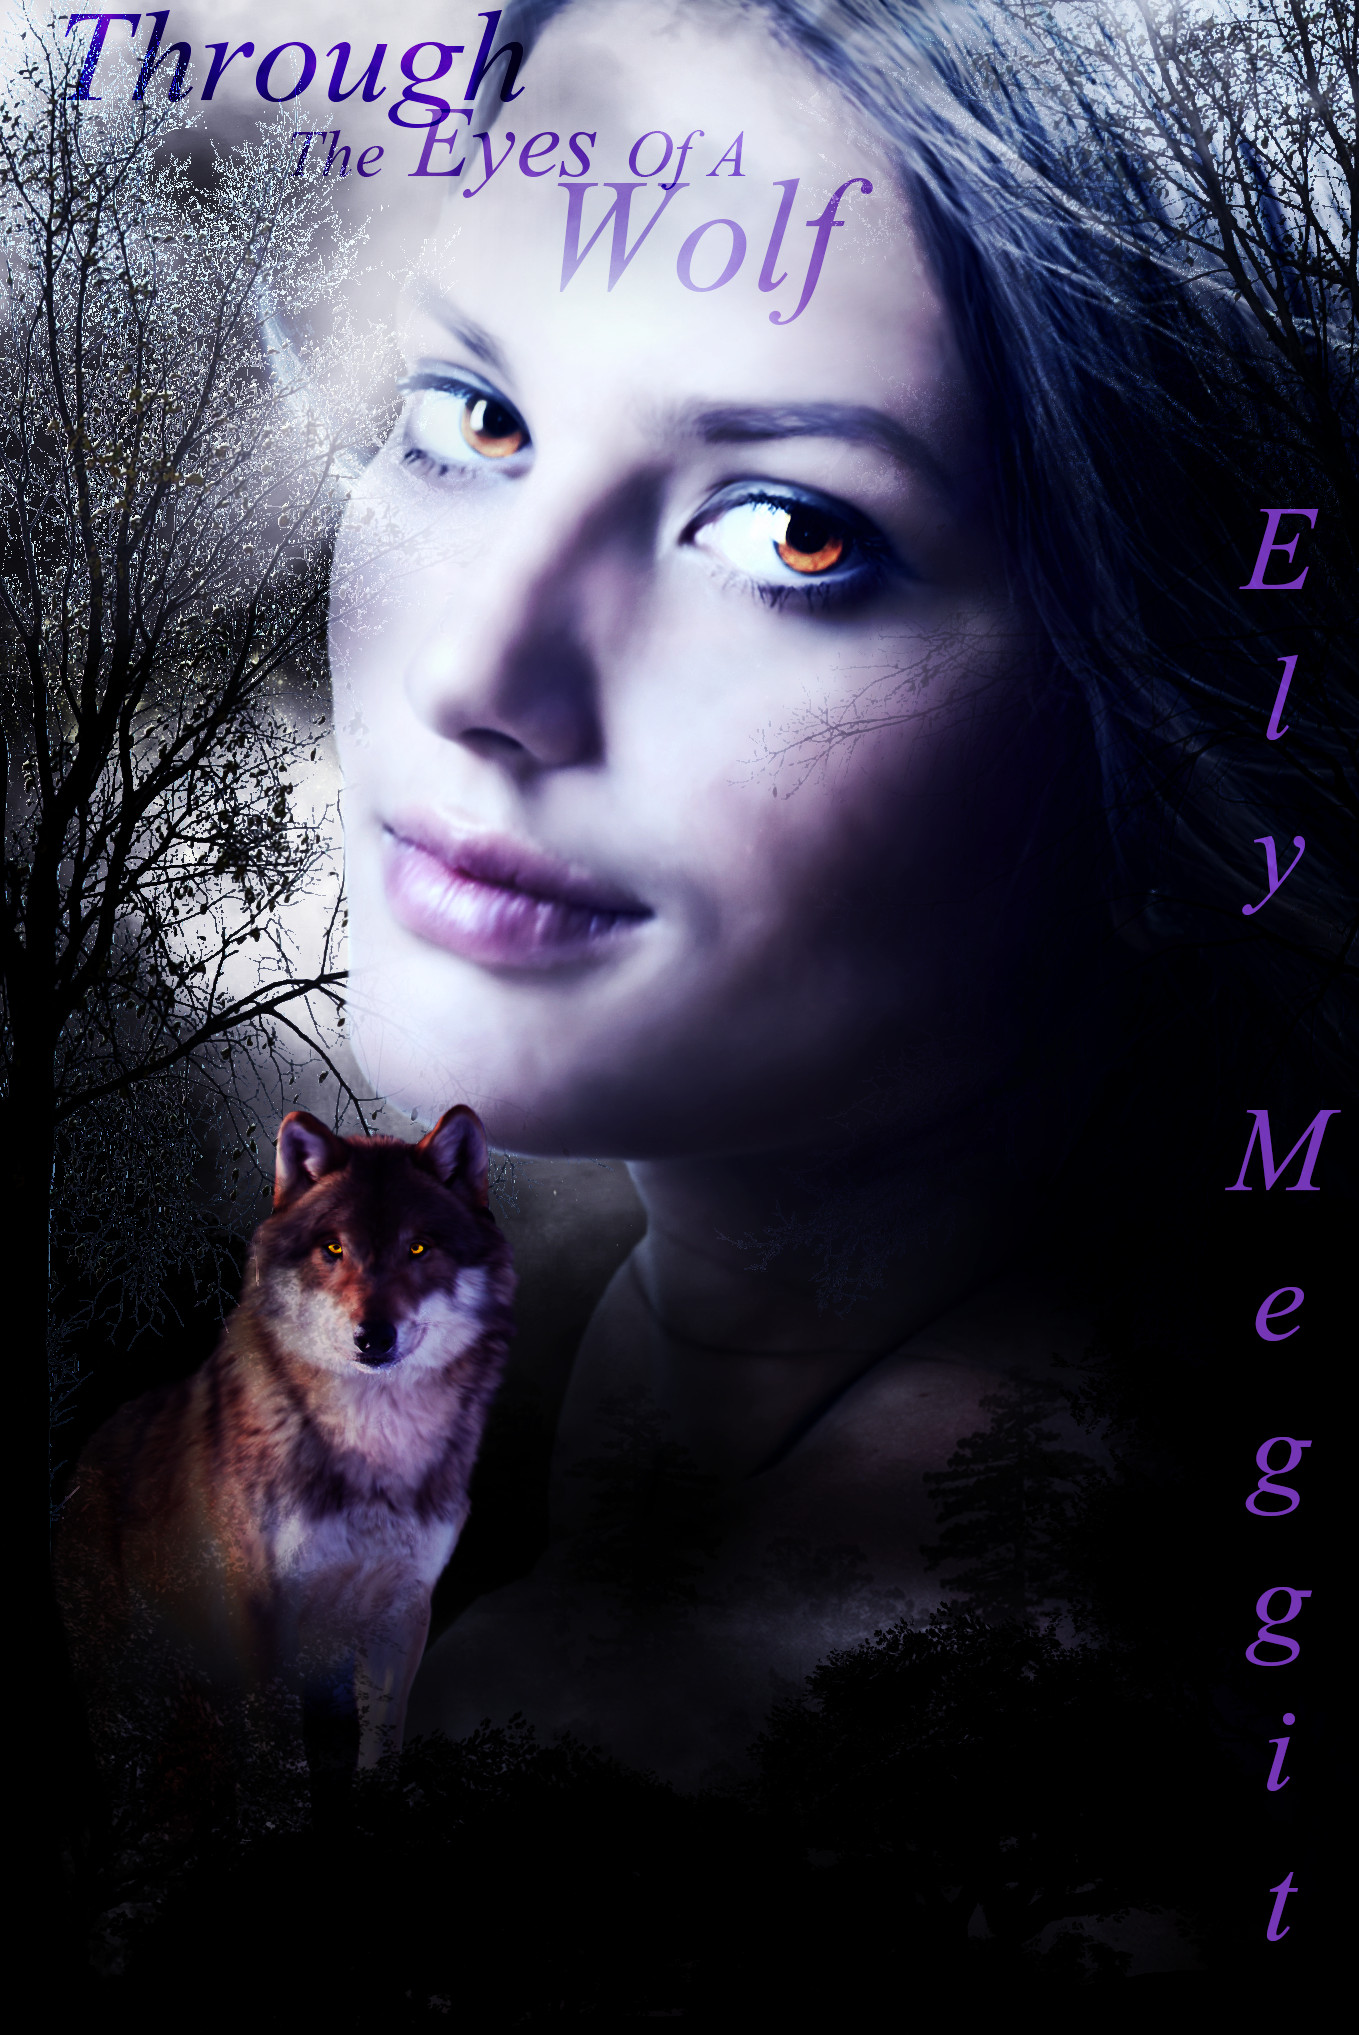 through_the_eyes_of_a_wolf_by_kmsnead-d6